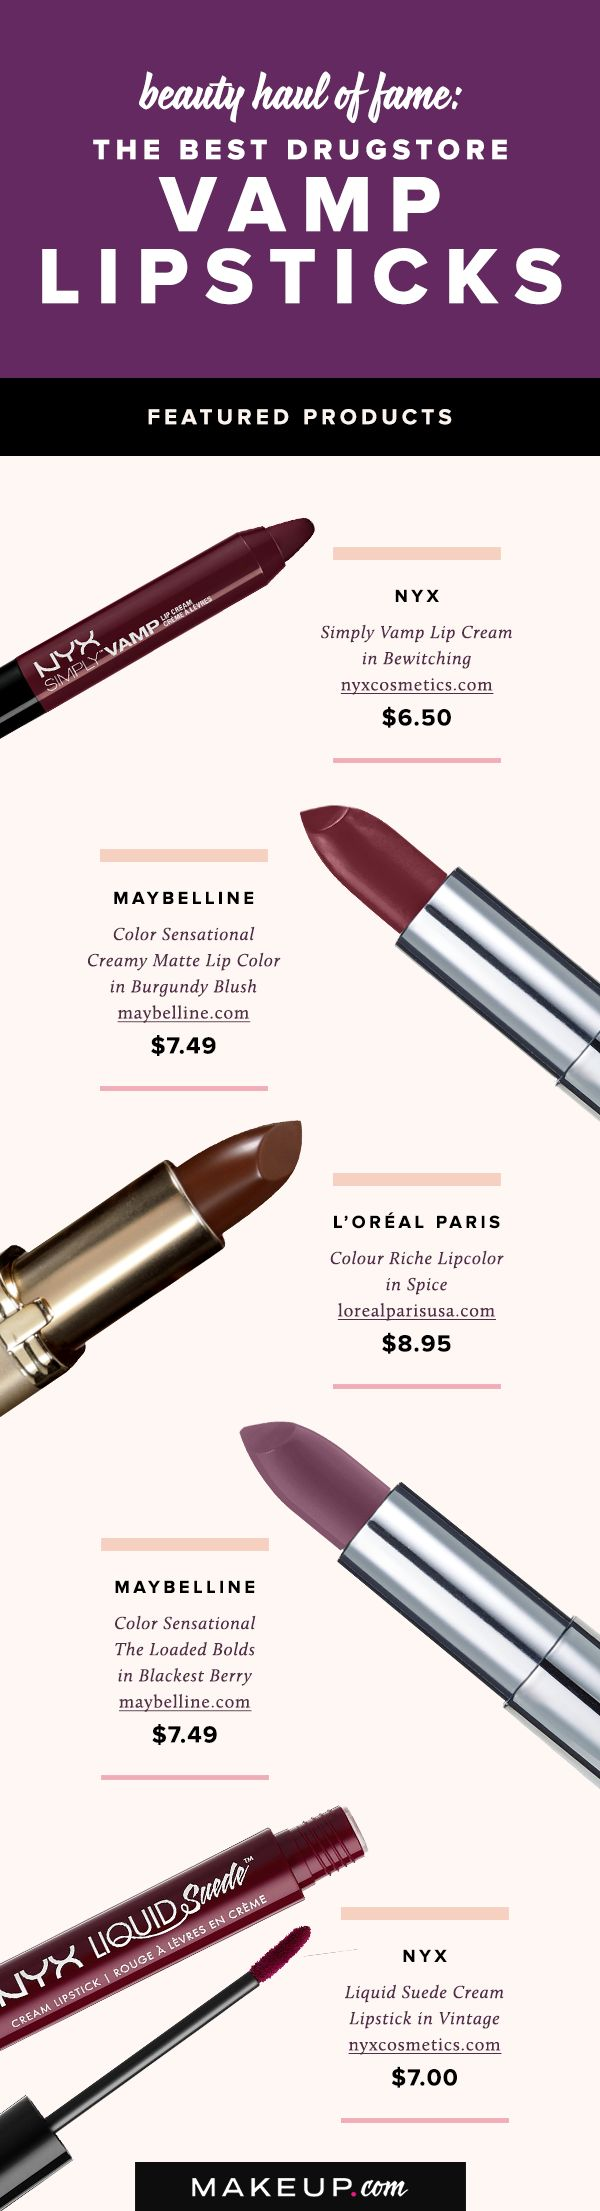 With the summer winding down, deep, dak lipstick looks are heating up! We've found the best affordable drugstore lipsticks available at your local drugstore, so see our top picks now.